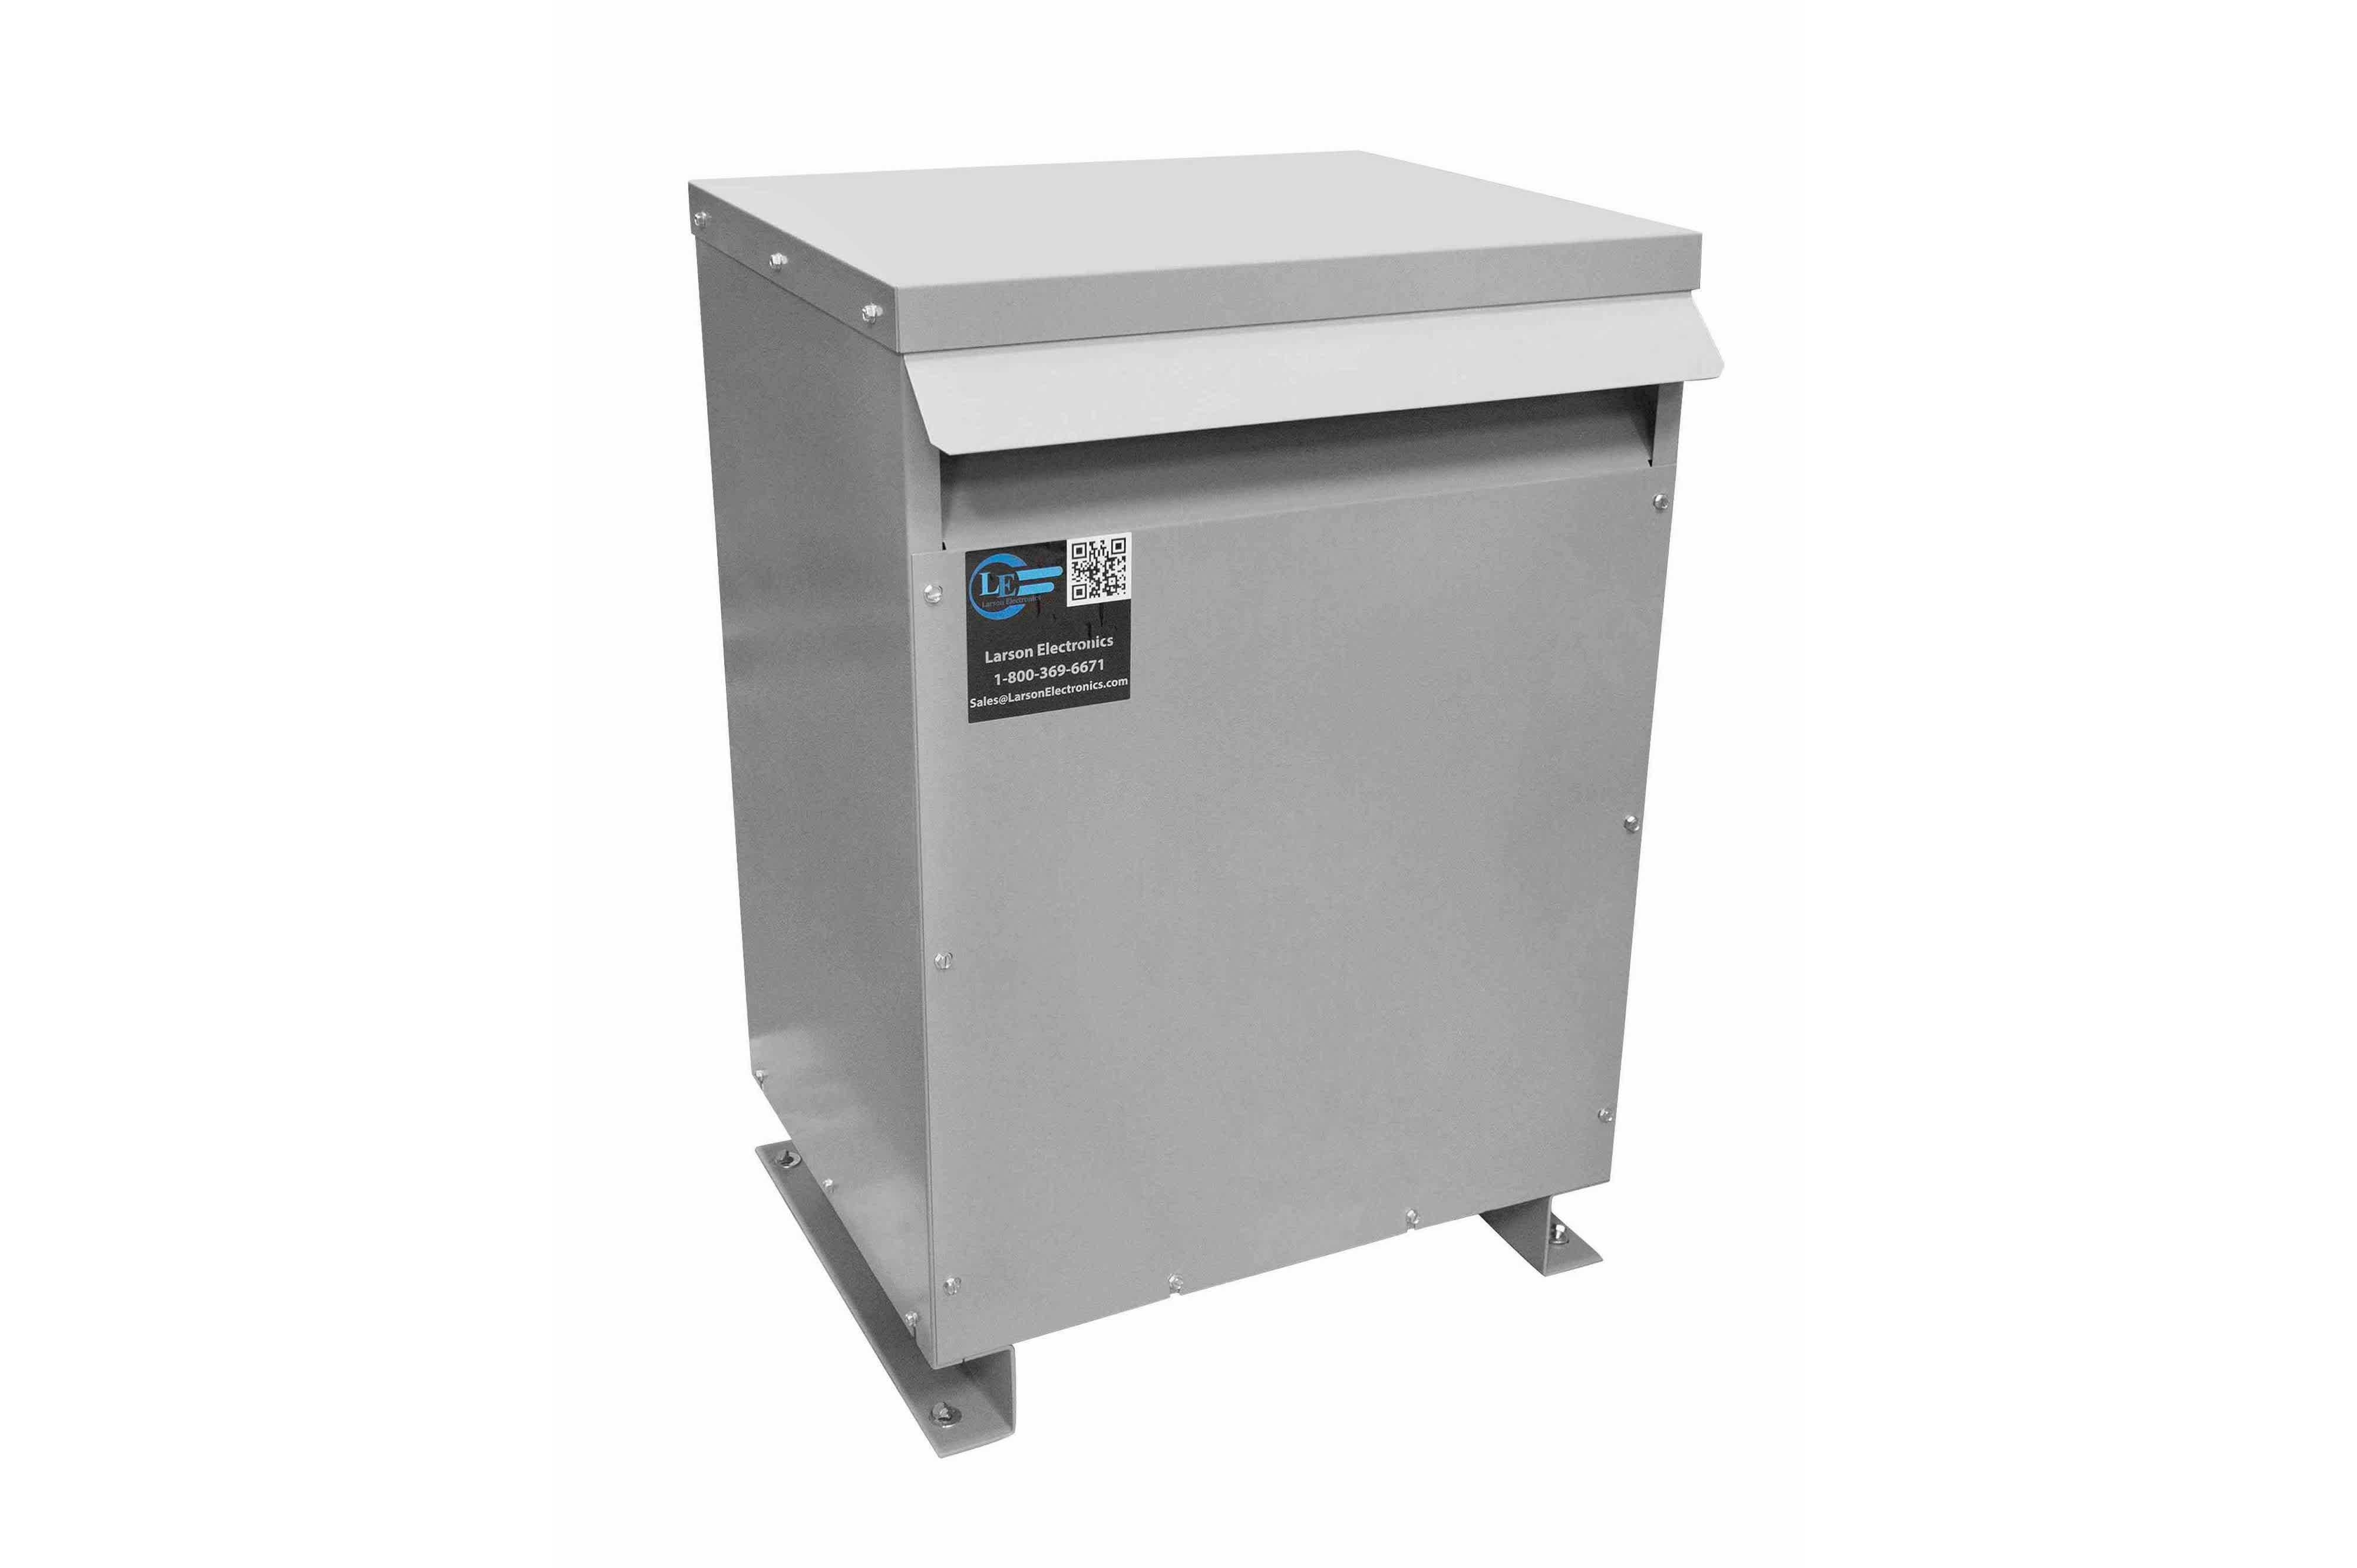 65 kVA 3PH Isolation Transformer, 575V Wye Primary, 240V Delta Secondary, N3R, Ventilated, 60 Hz